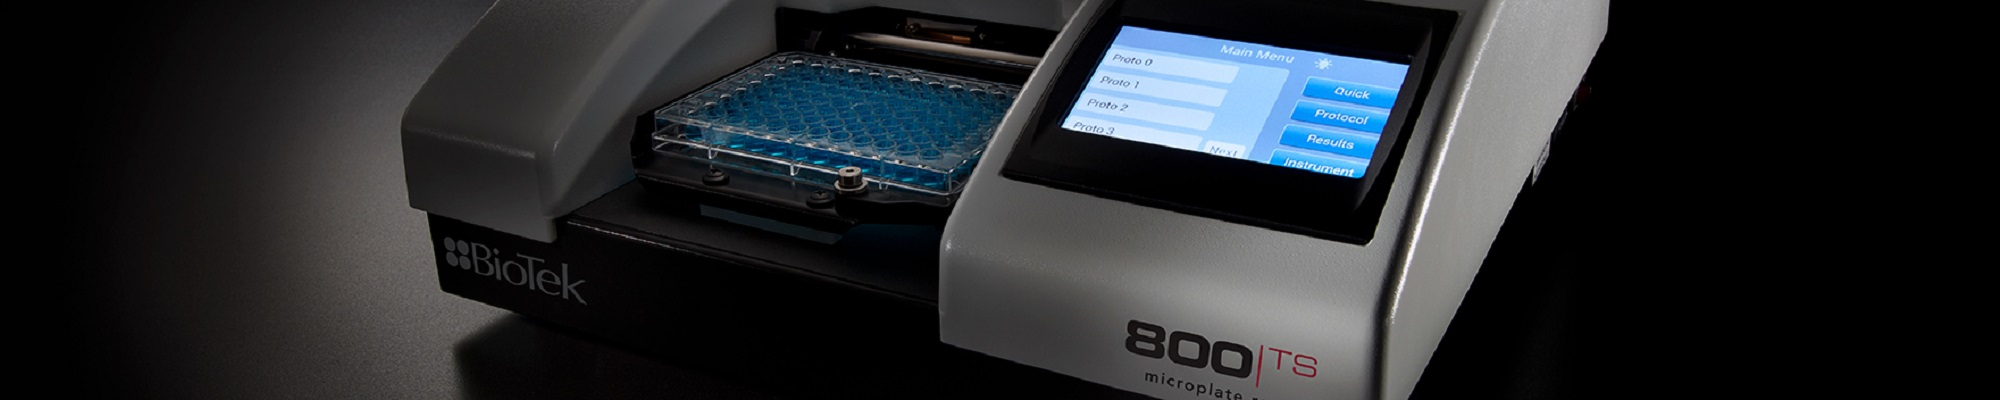 LabX Reasons to Upgrade: The BioTek 800 TS Microplate Absorbance Reader